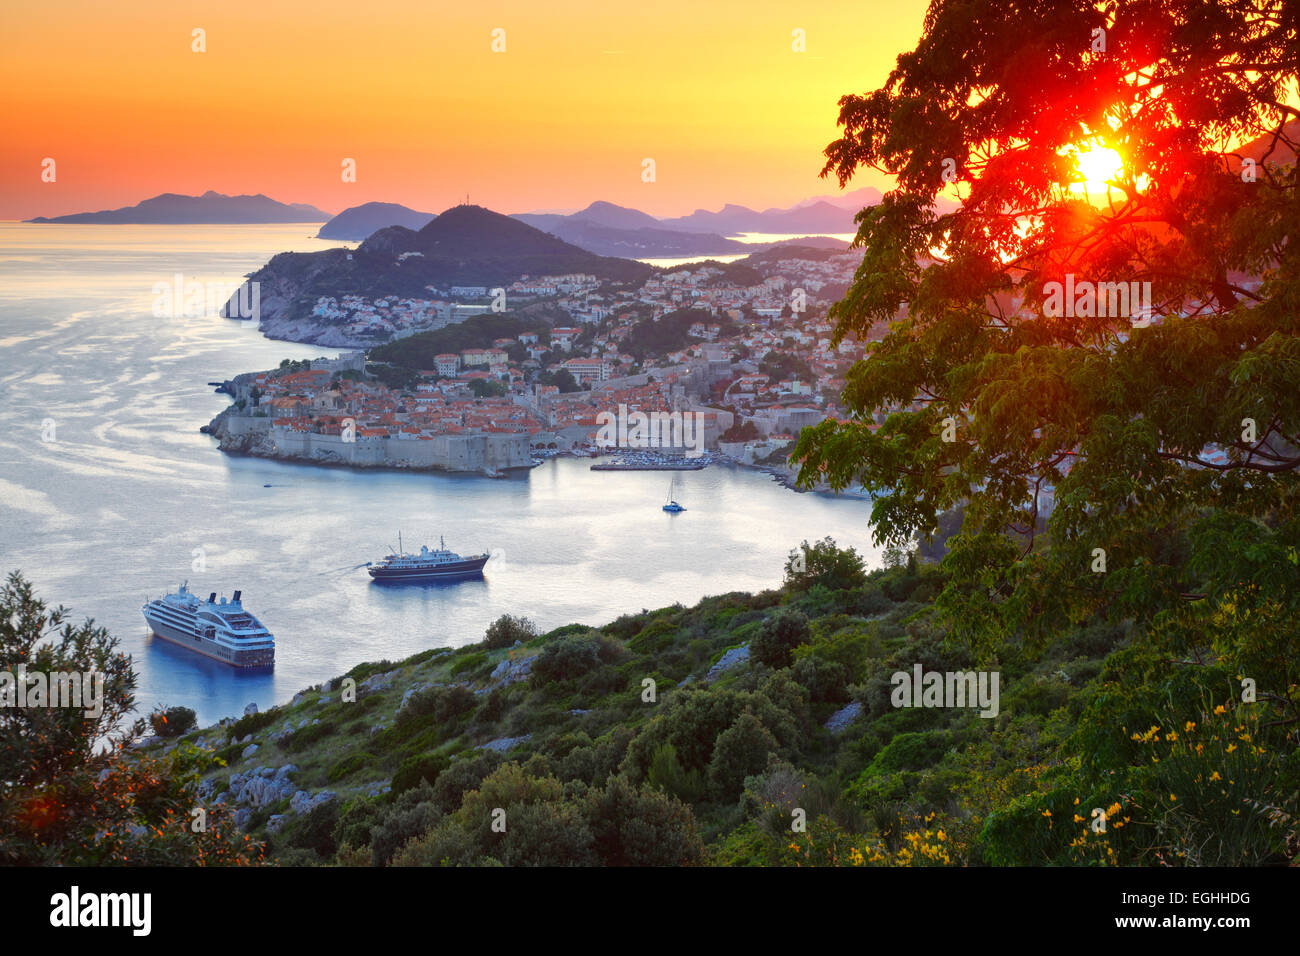 Panorama of old town Dubrovnik in sunset, Croatia. - Stock Image